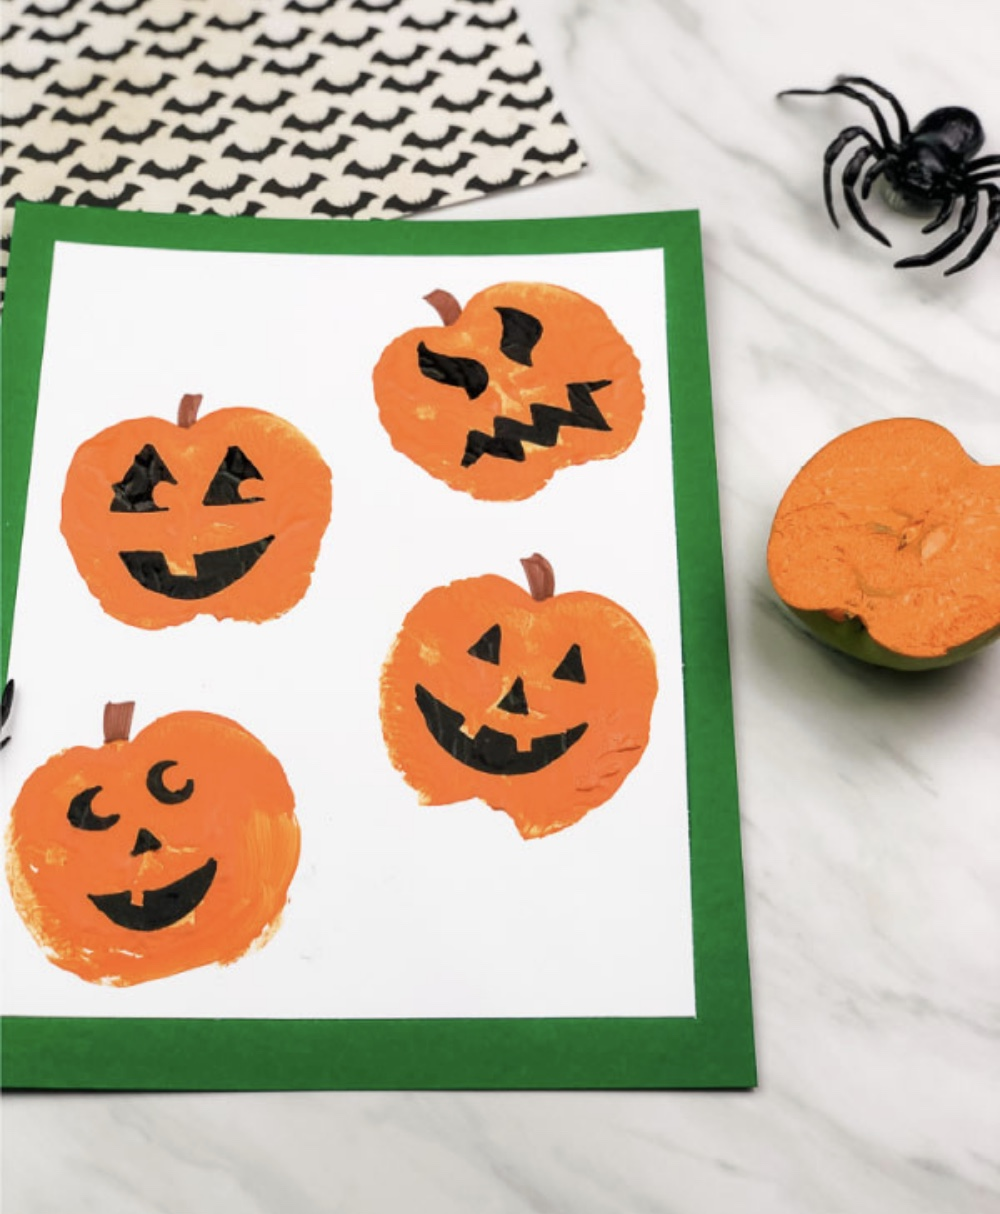 Get crafty this October and create something special with one of these 7 easy Halloween crafts and hands-on activities for toddlers and young kids! | @glitterinclexi | GLITTERINC.COM // Apple Stamp Pumpkin Craft